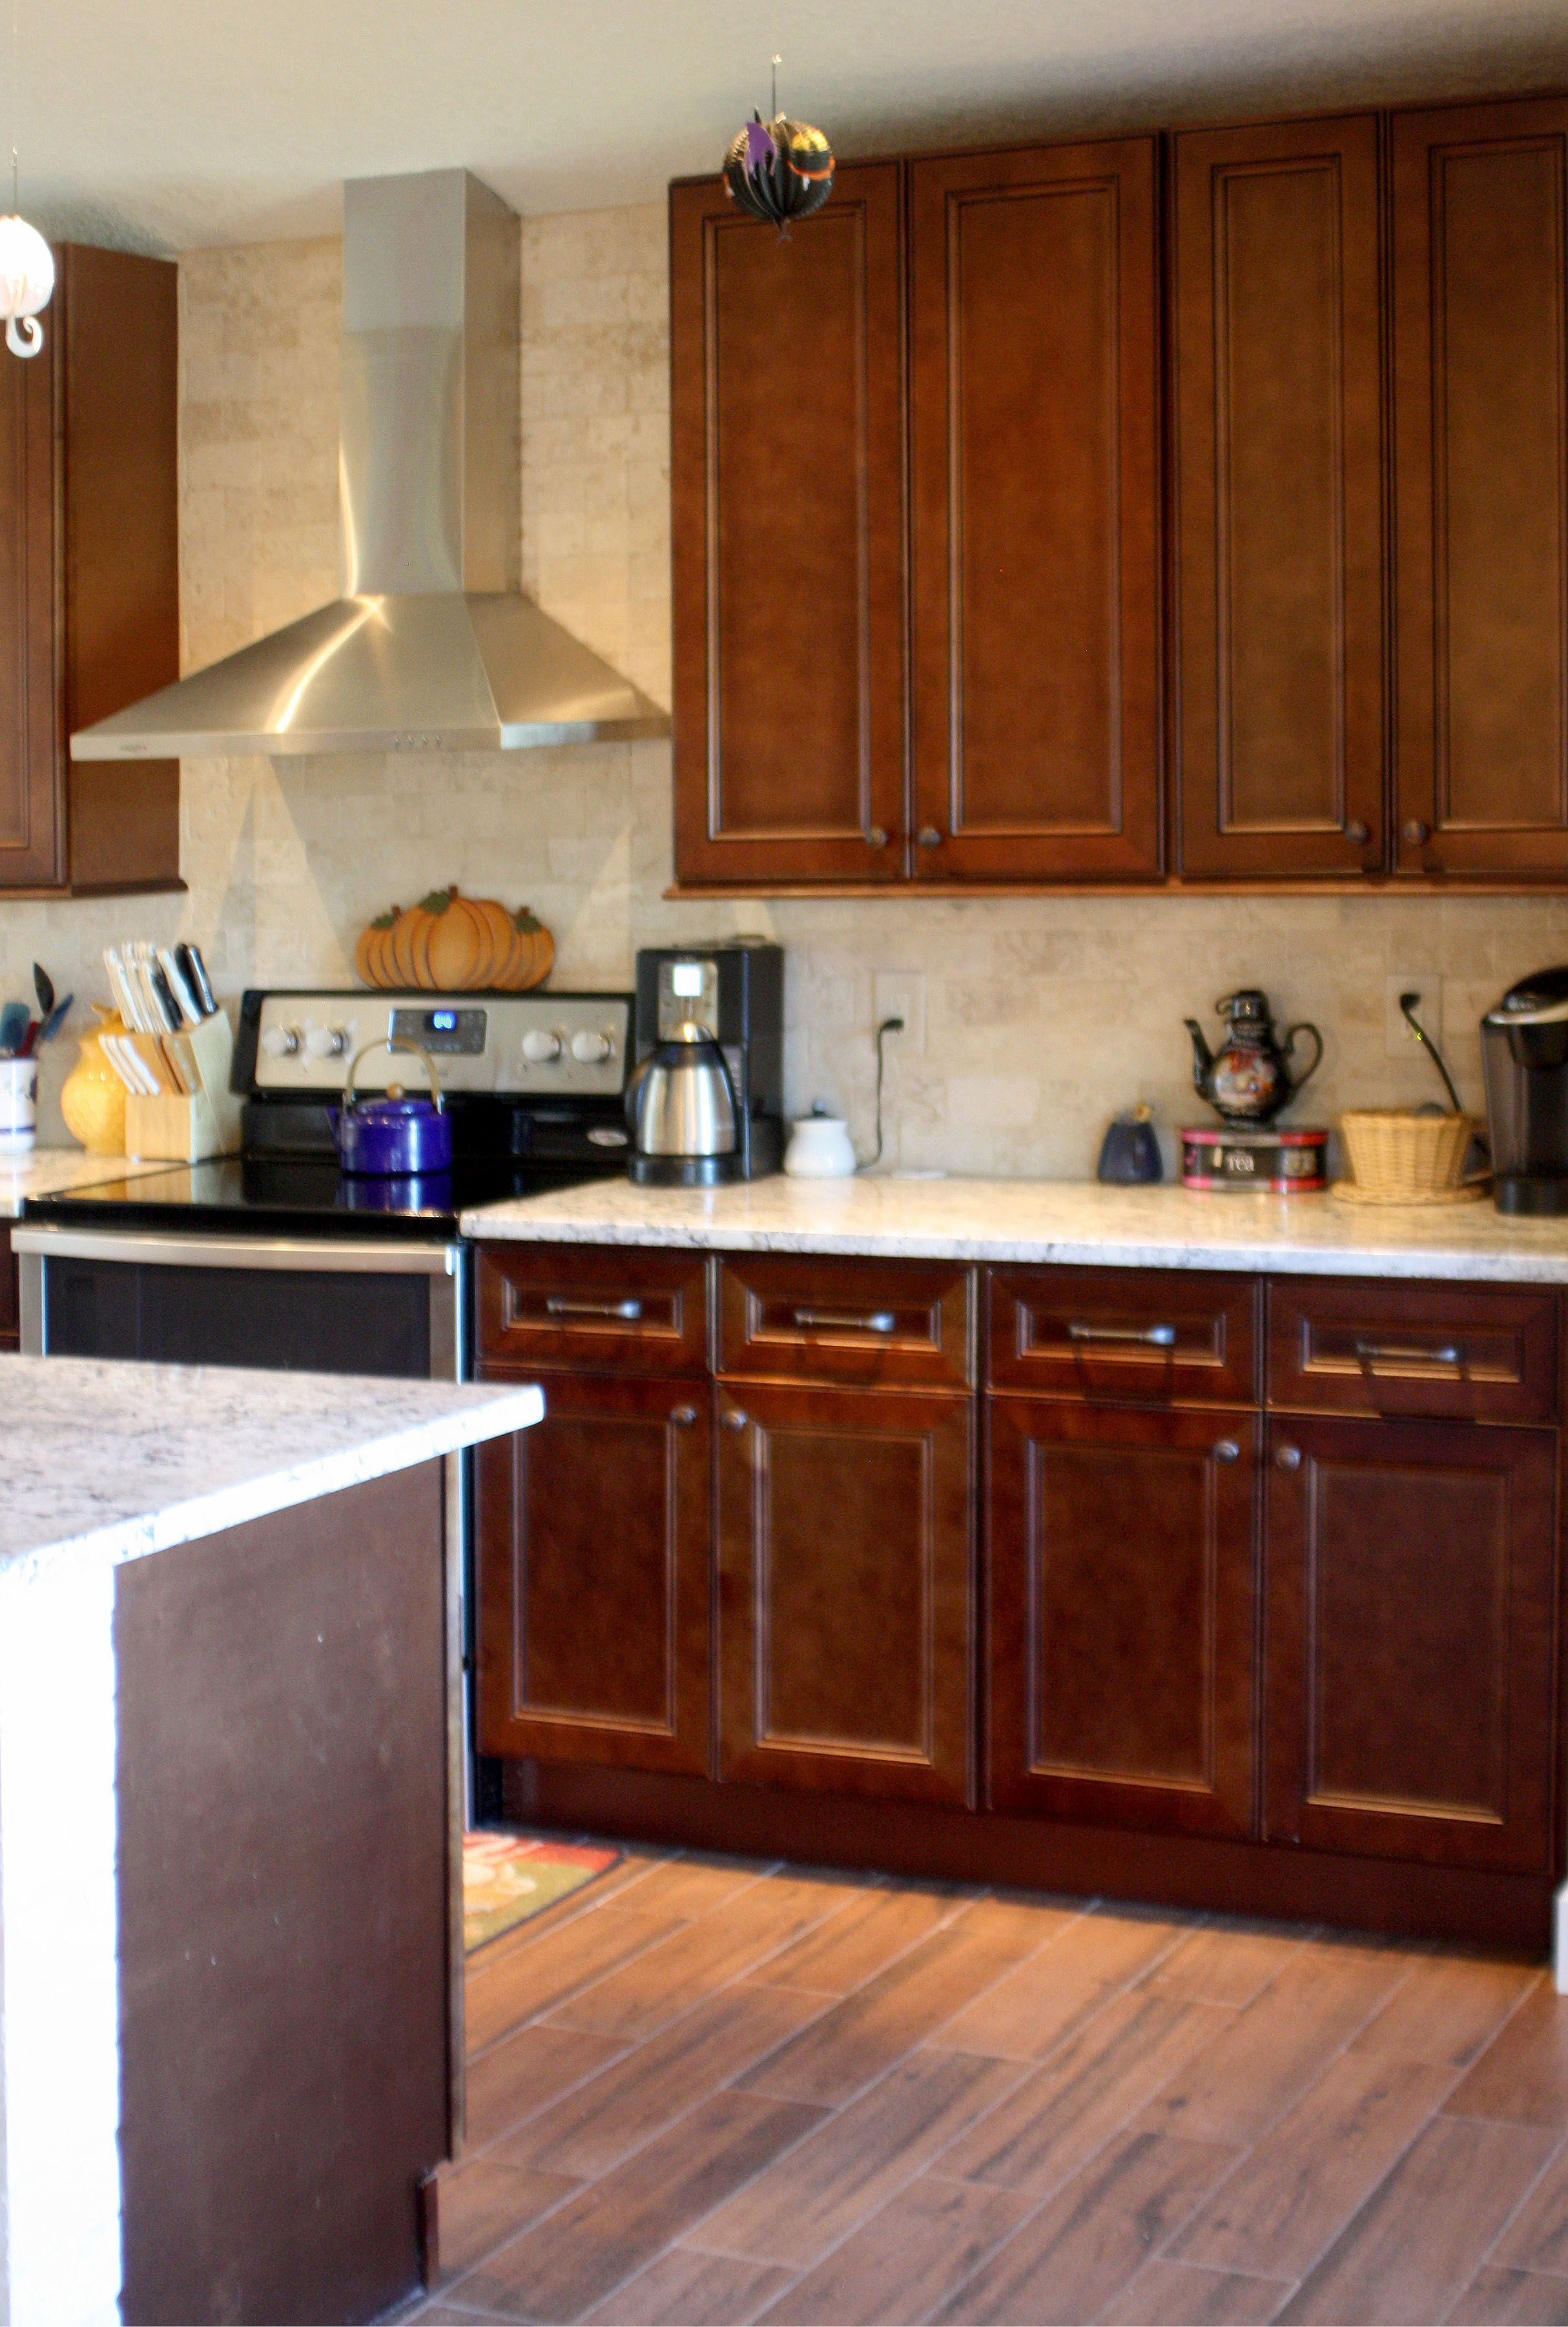 All New Cabinets Hardware And Walls Of Travertine Subway Tile